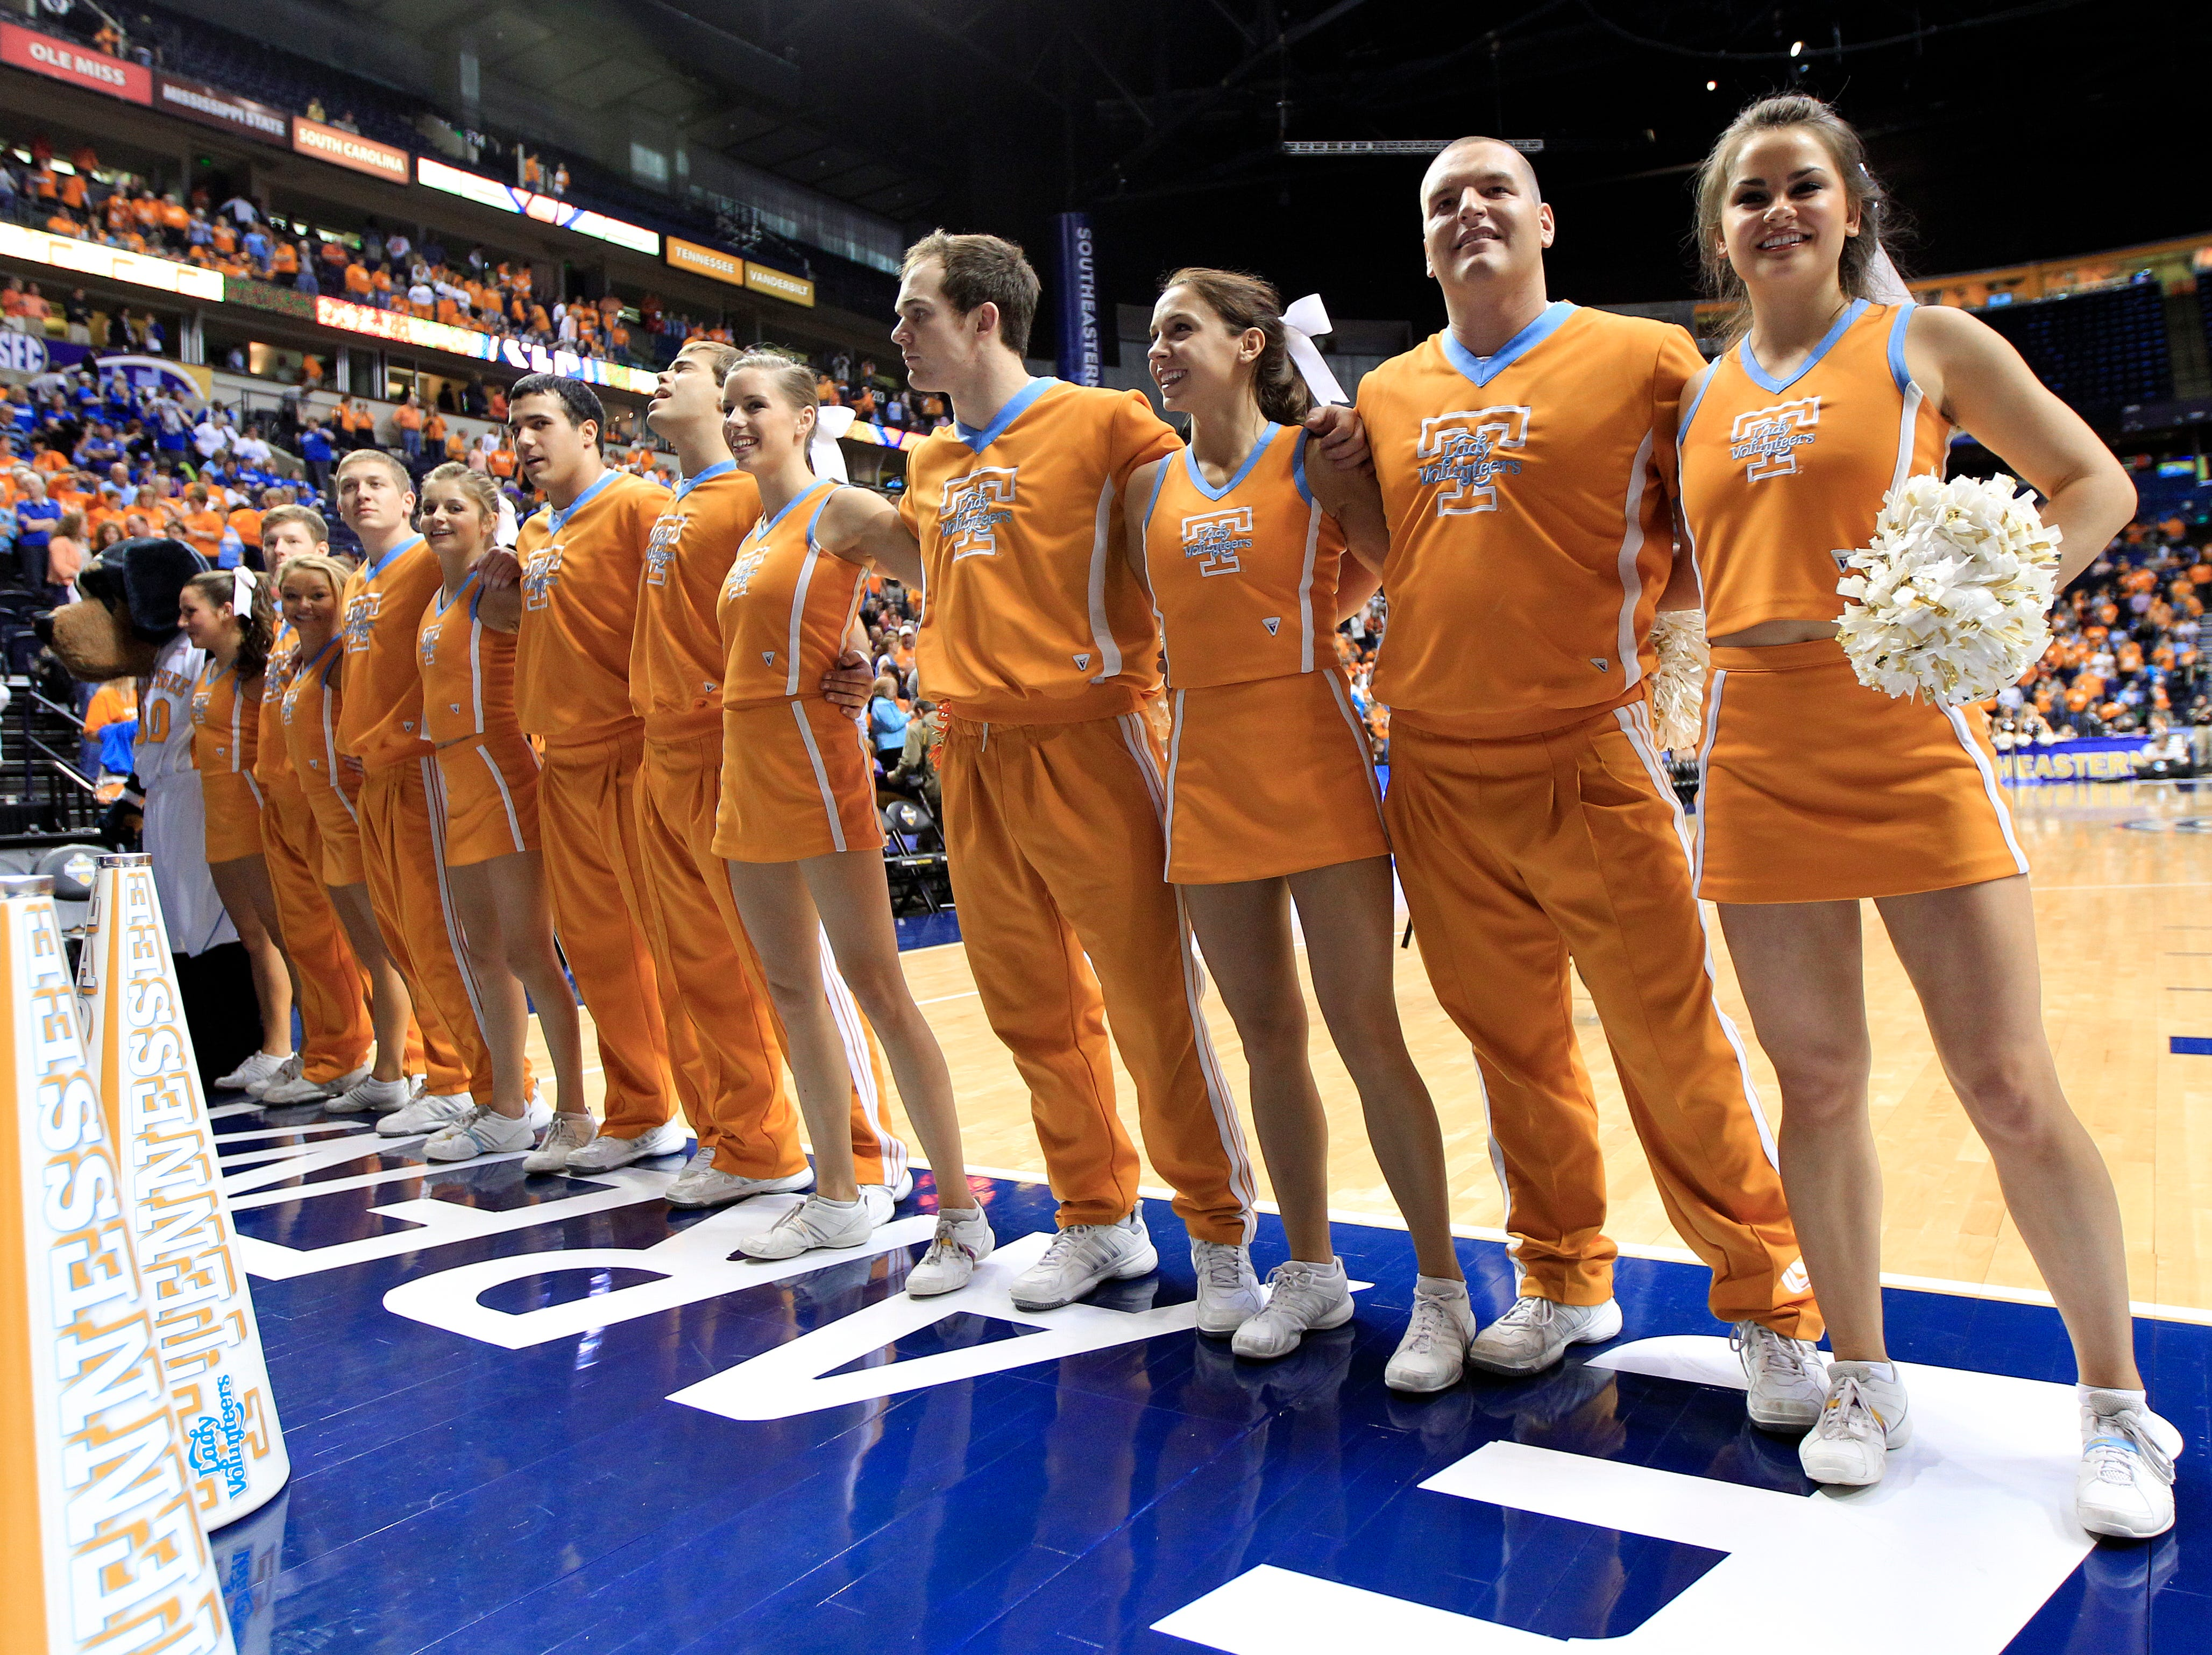 Tennessee cheerleaders sing the school song after Tennessee beat Vanderbilt in an NCAA college basketball game at the women's Southeastern Conference tournament on Friday, March 2, 2012, in Nashville, Tenn. Tennessee won 68-57. (AP Photo/Mark Humphrey)